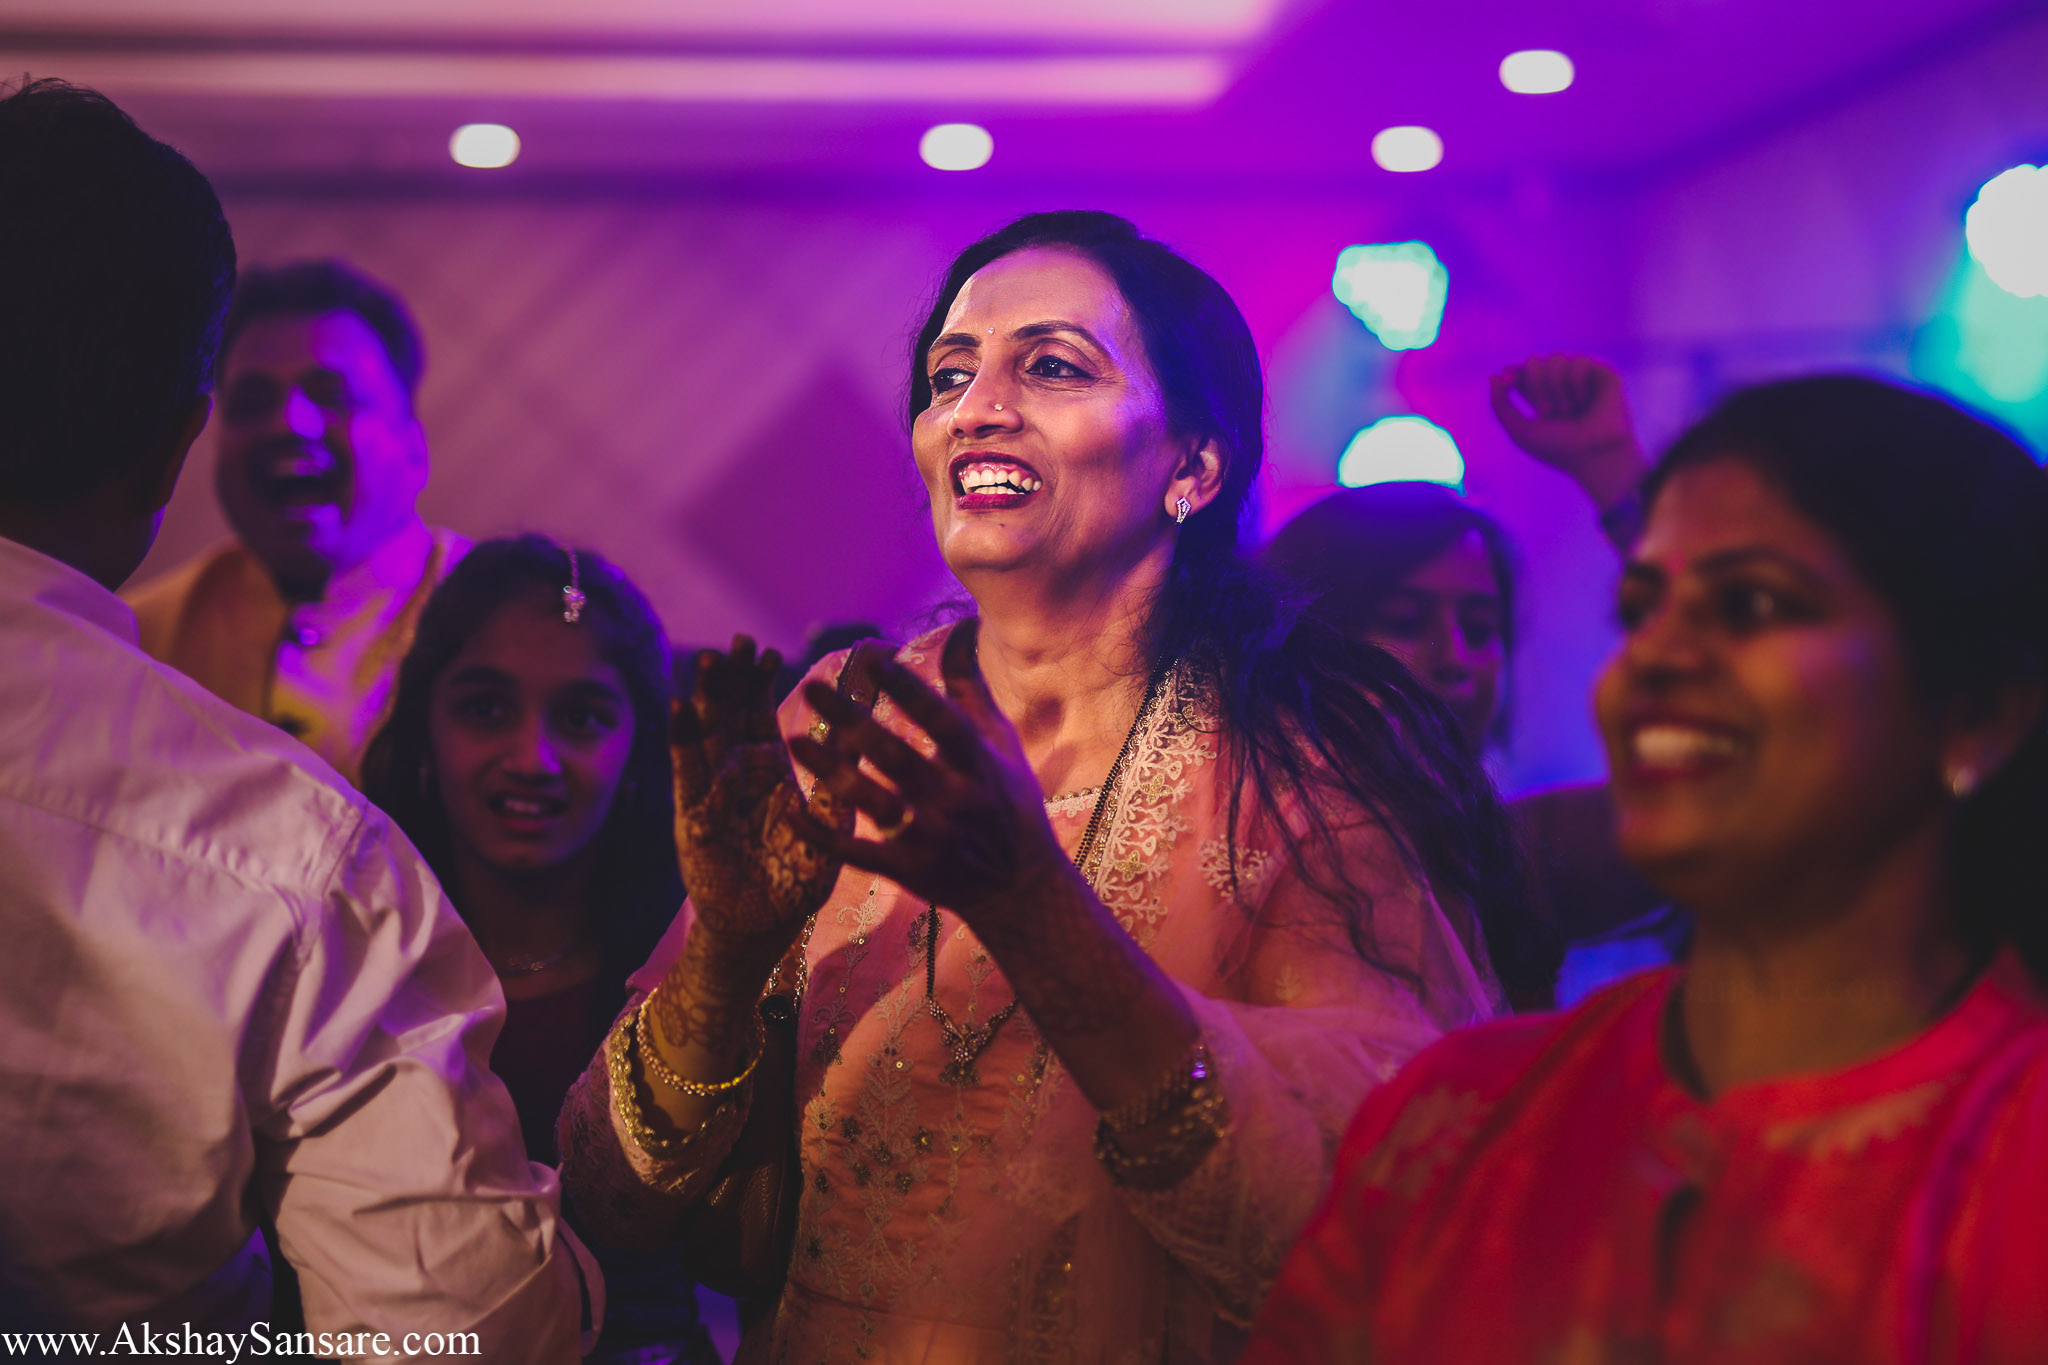 Ajay & Devika Akshay Sansare Photography Best Candid wedding photographer in mumbai india7.jpg